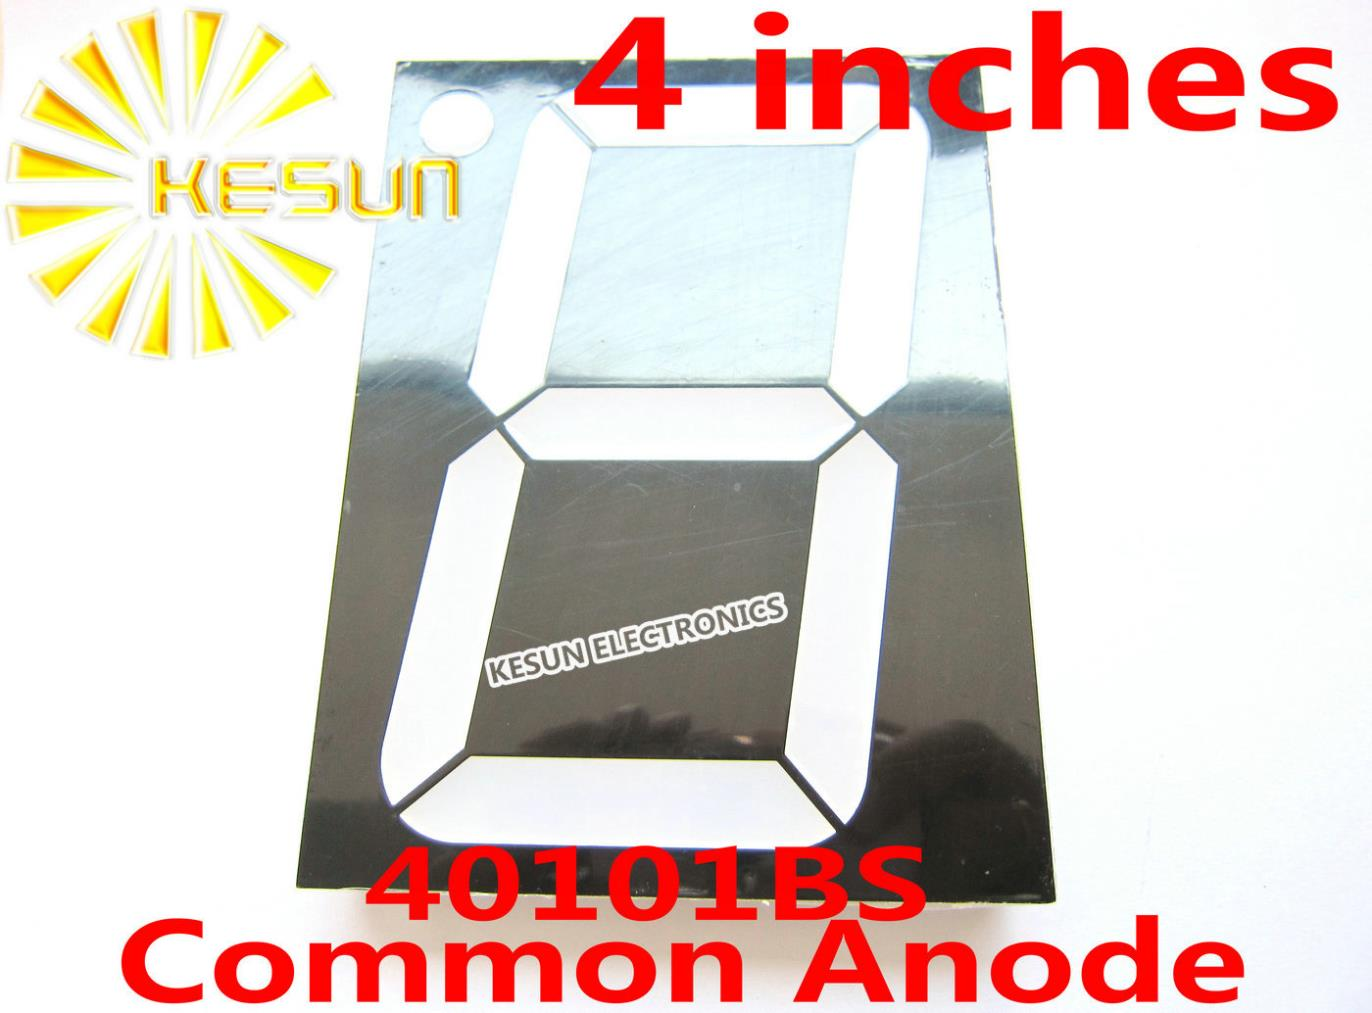 10PCS X 4 Inches Red 40101BS 40101AS Common Anode/Cathode Single Digital Tube LED Display Module